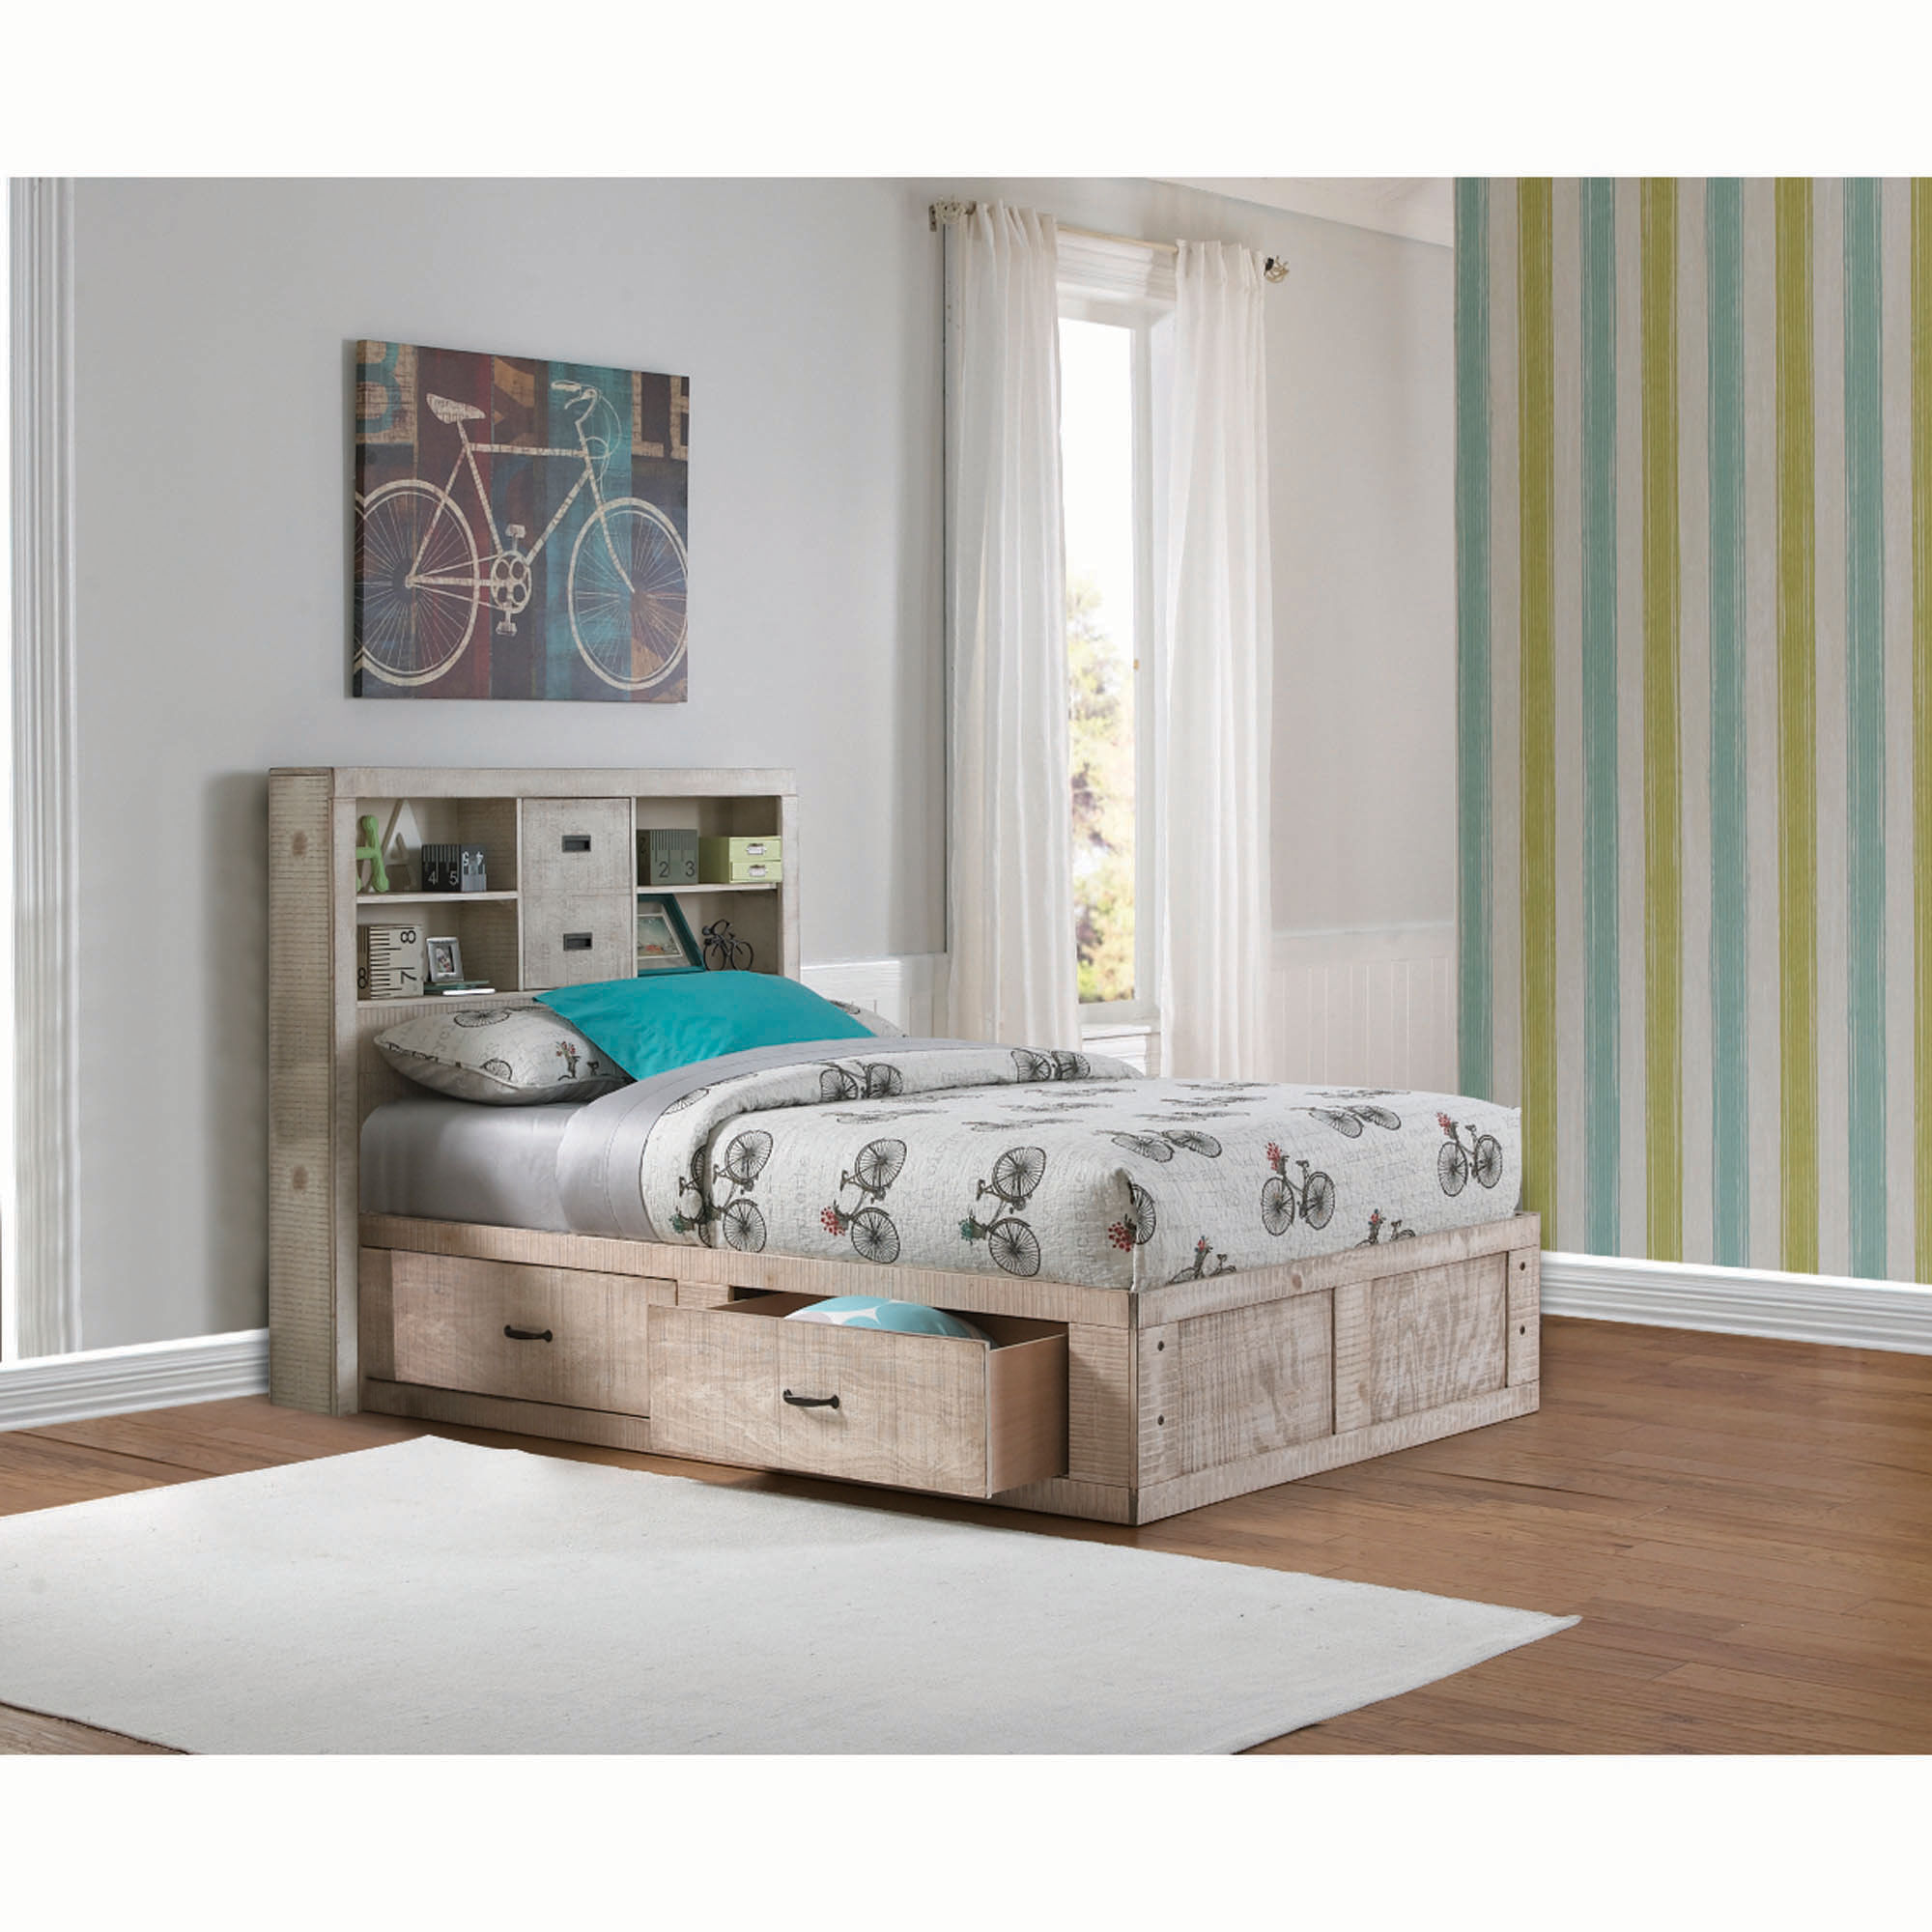 Kids bed Table 6piece Captains Youth Fullsize Bed Mattress Set Aarons Kids Beds From Toddlers To Teens Aarons